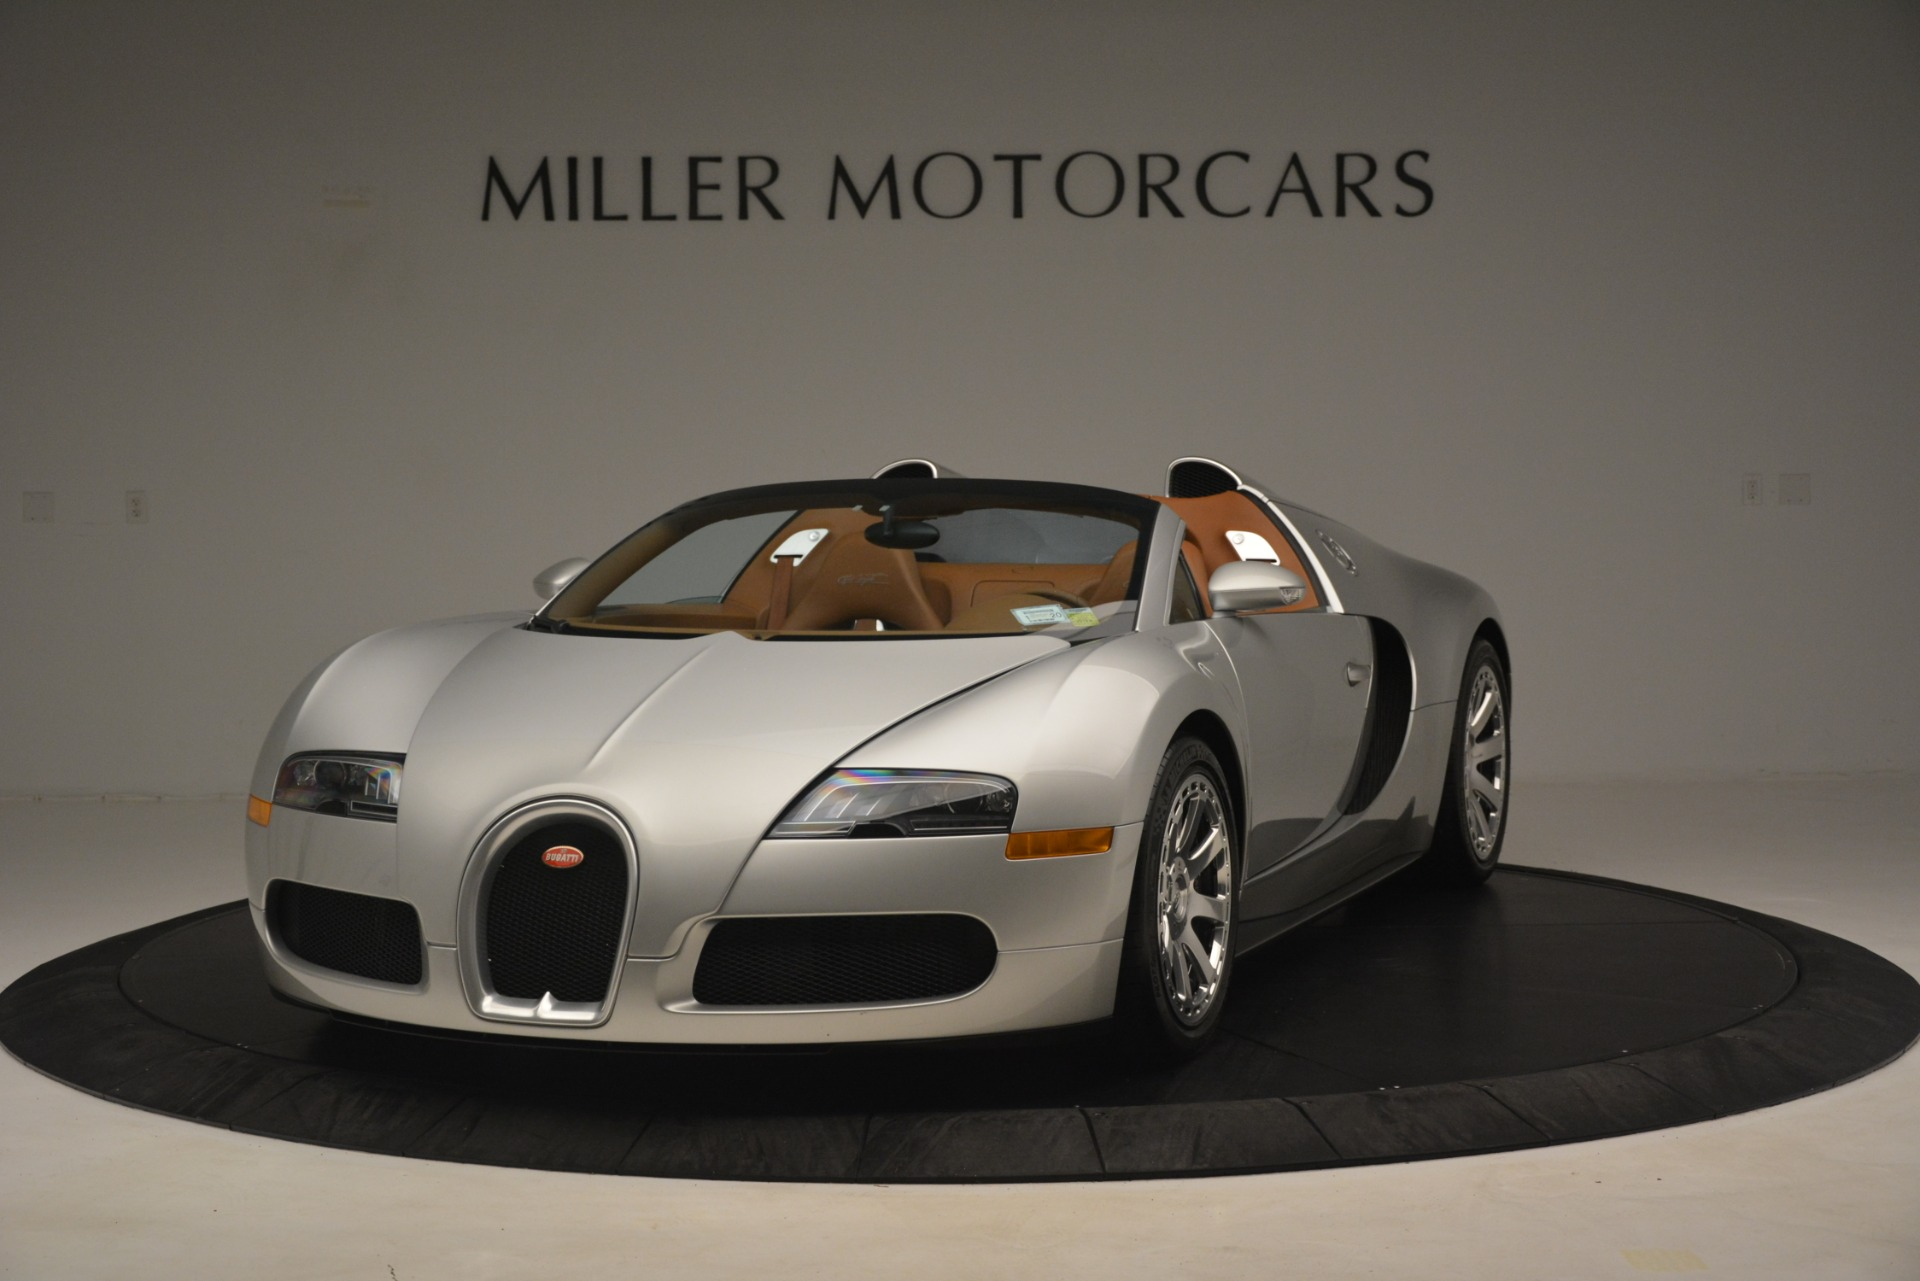 Used 2010 Bugatti Veyron 16.4 Grand Sport for sale Sold at Alfa Romeo of Westport in Westport CT 06880 1